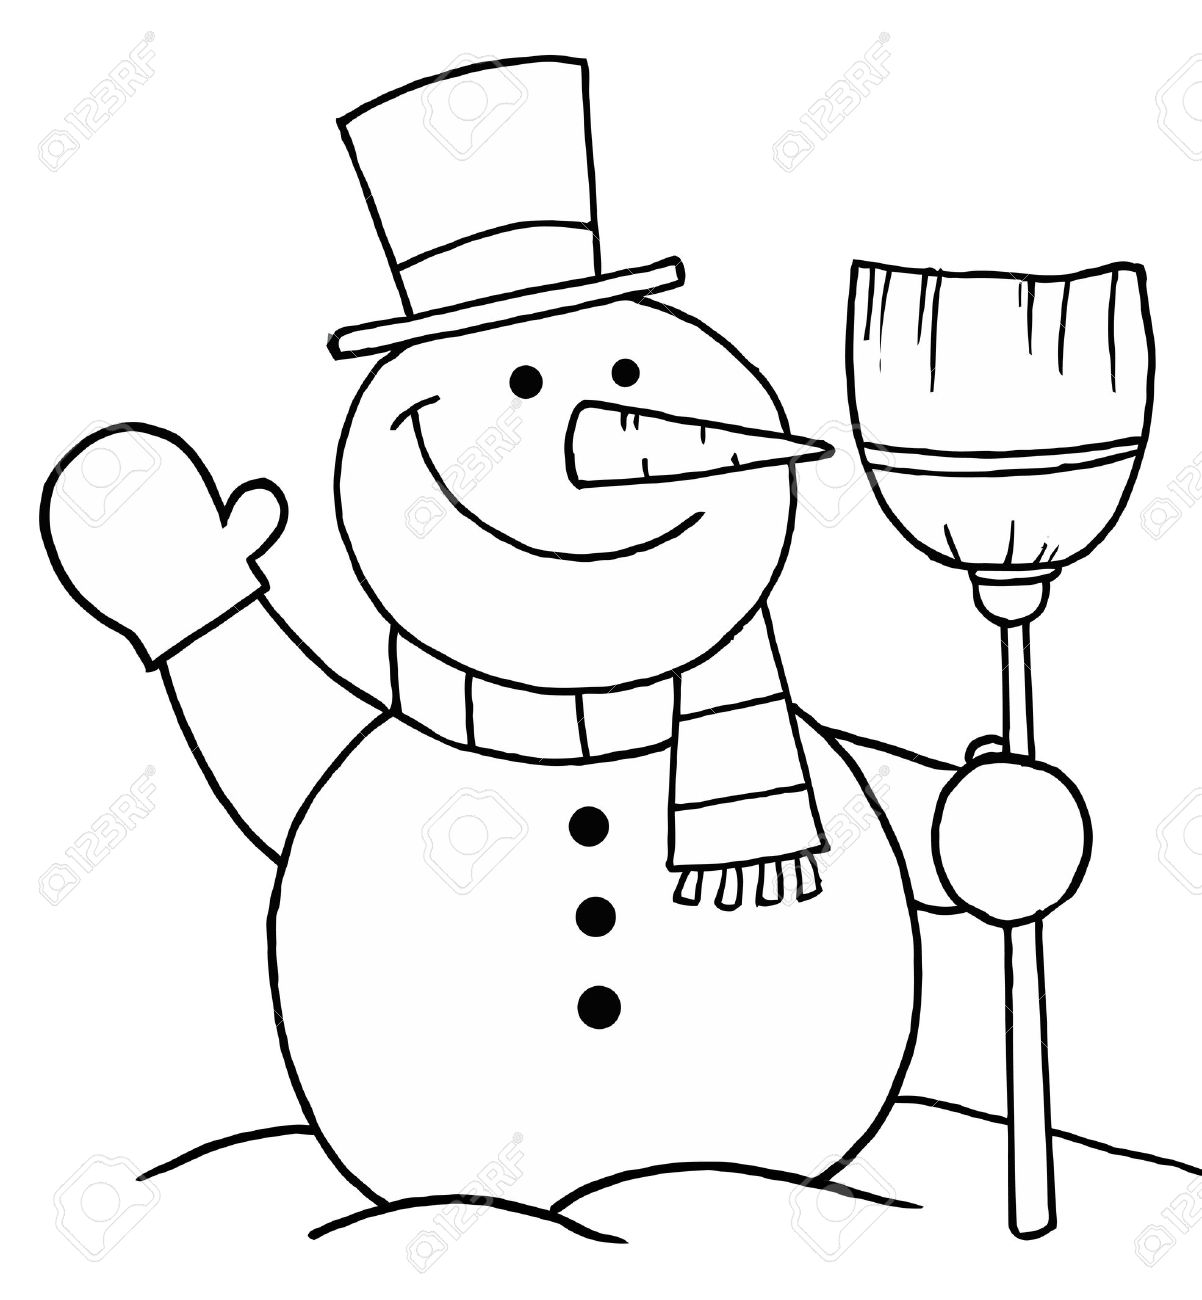 black and white coloring page outline of a snowman with a broom